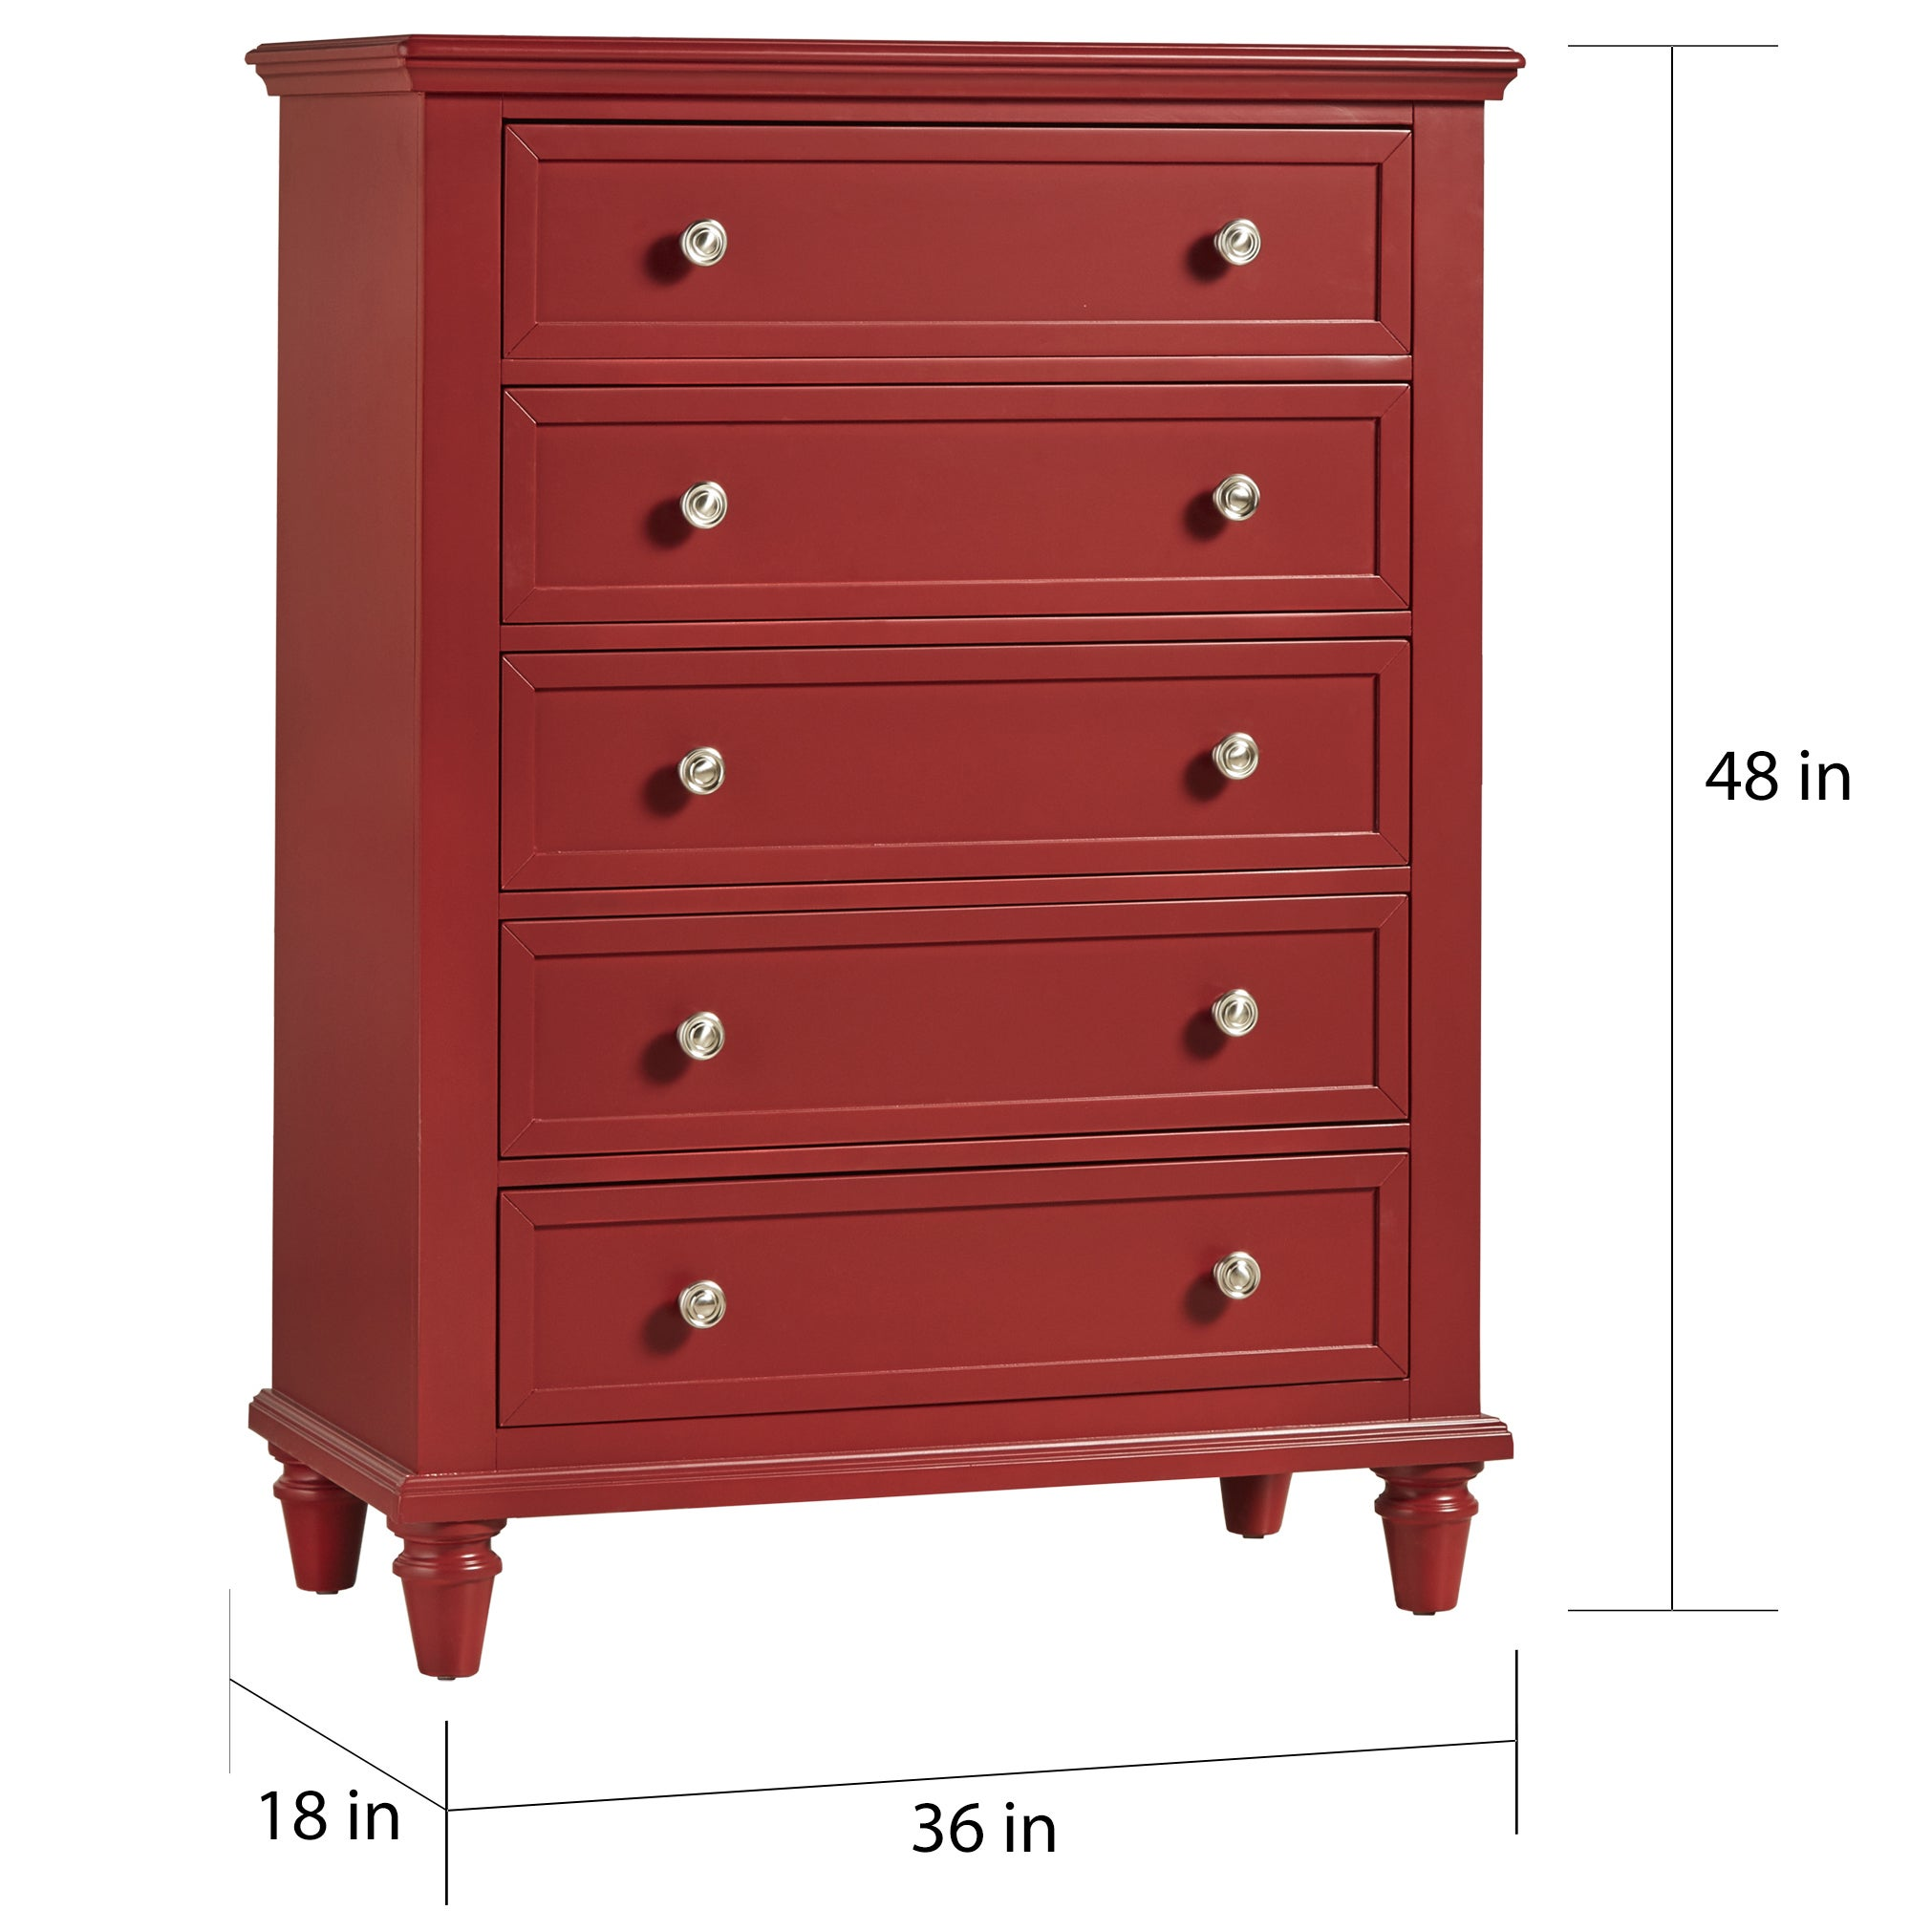 drawers long second wood french bedroom red black cherry furniture cheap white chest drawer closet dresser of bureau hand